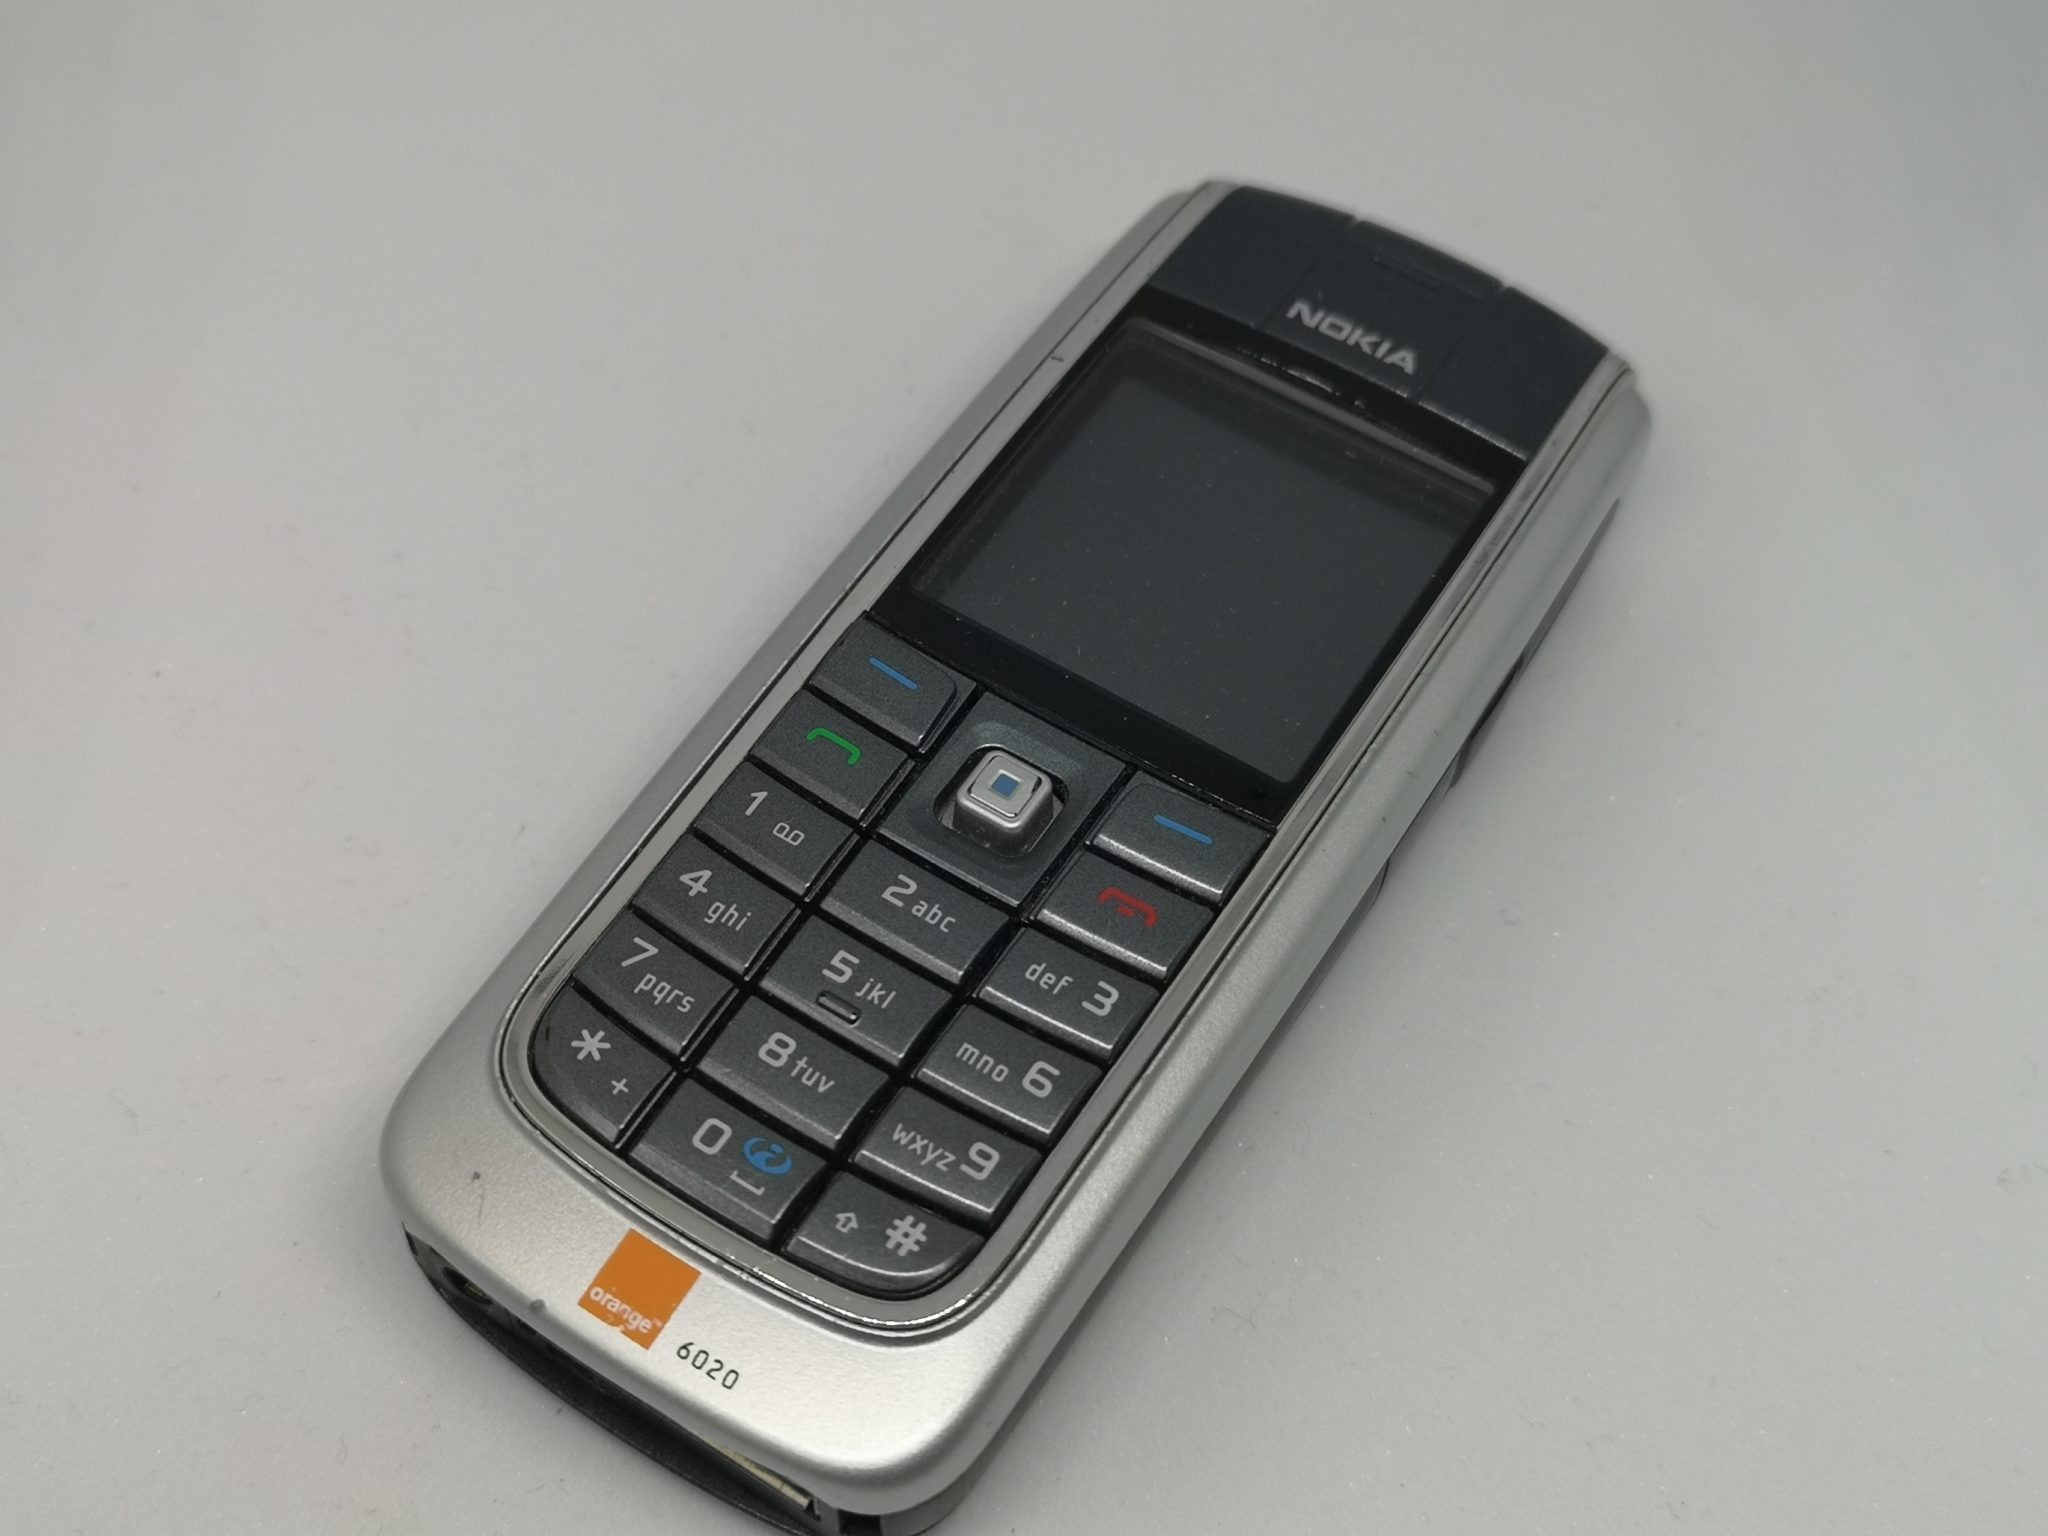 Nokia 6020 Review - A Cut-Down Version of a Classic Mobile Phone